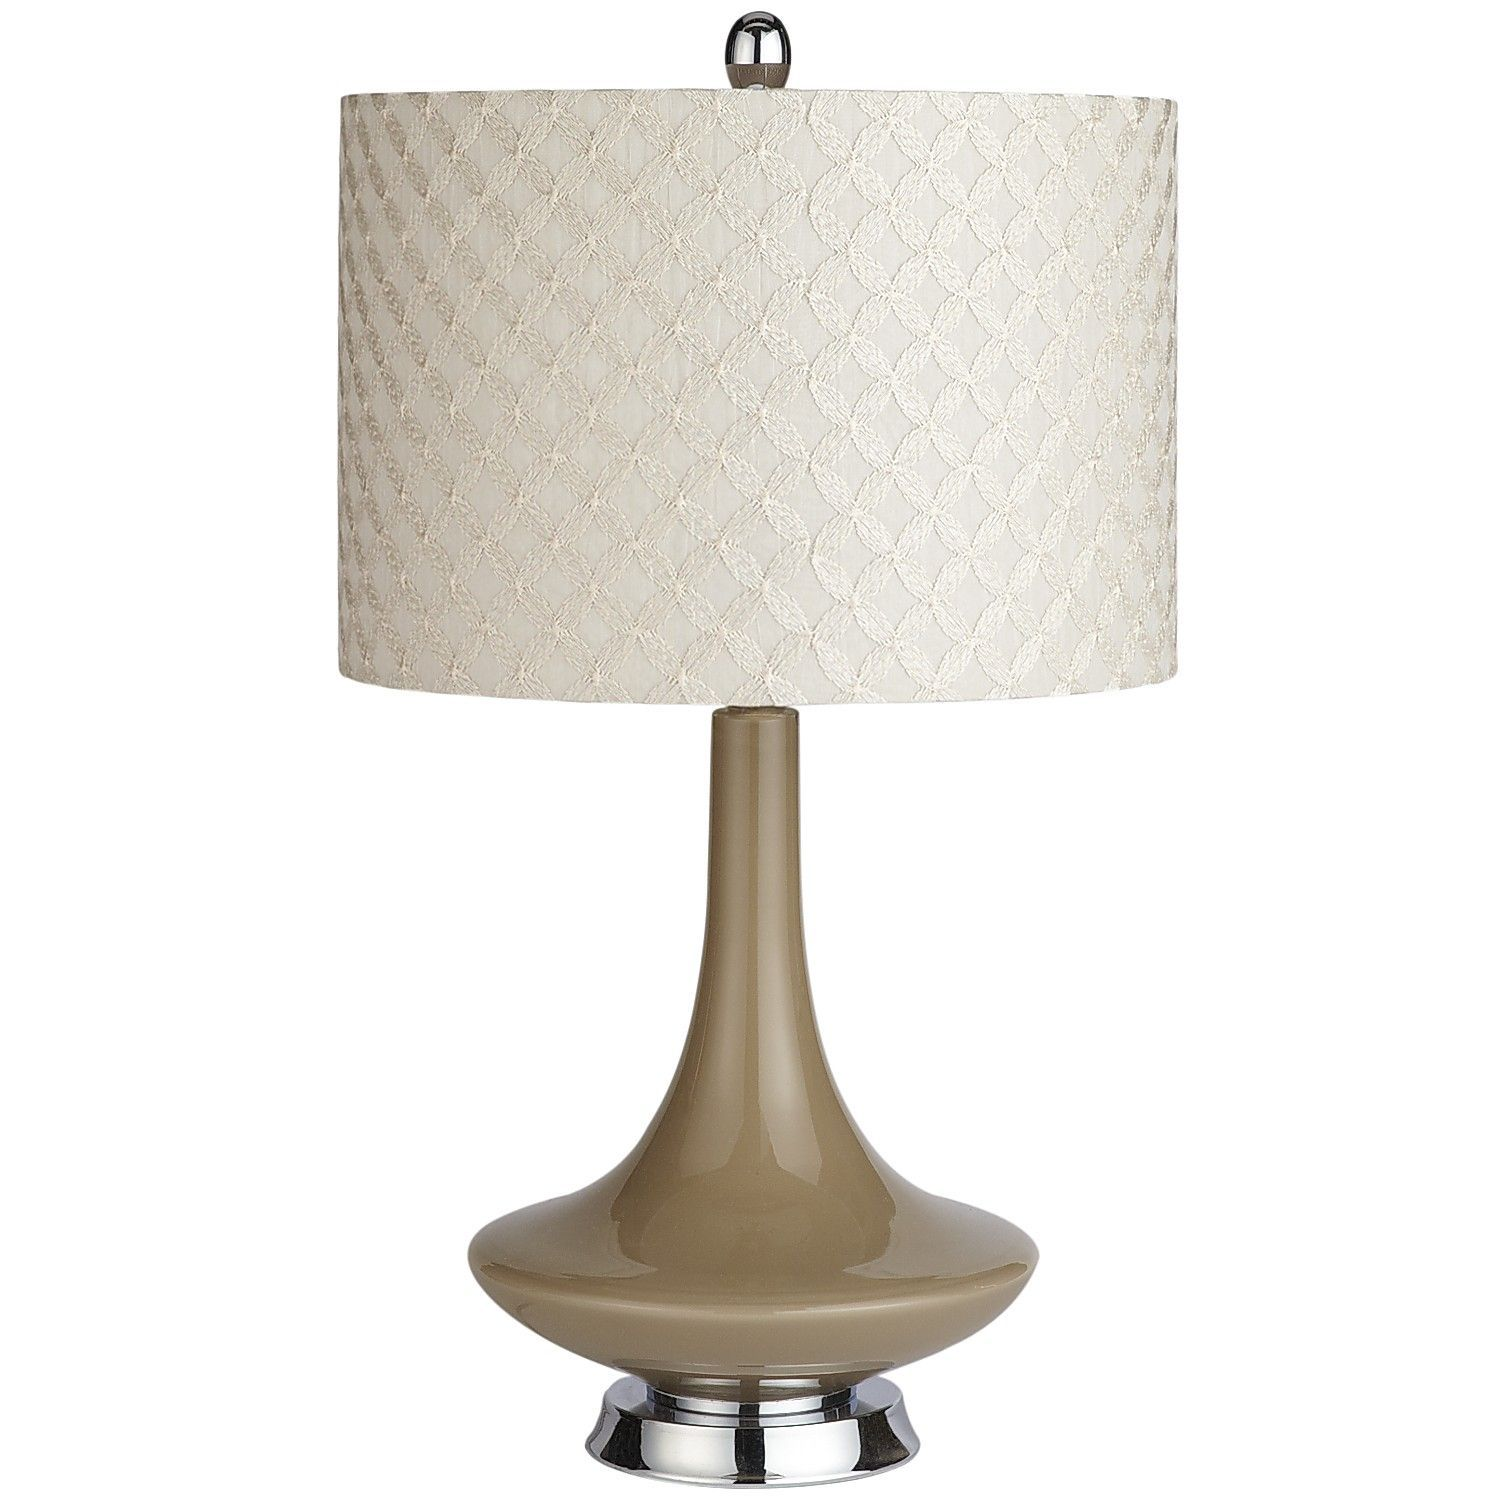 Modern Lamp Taupe Pier1 Com 75 00 Maybe For Guest Room Unique